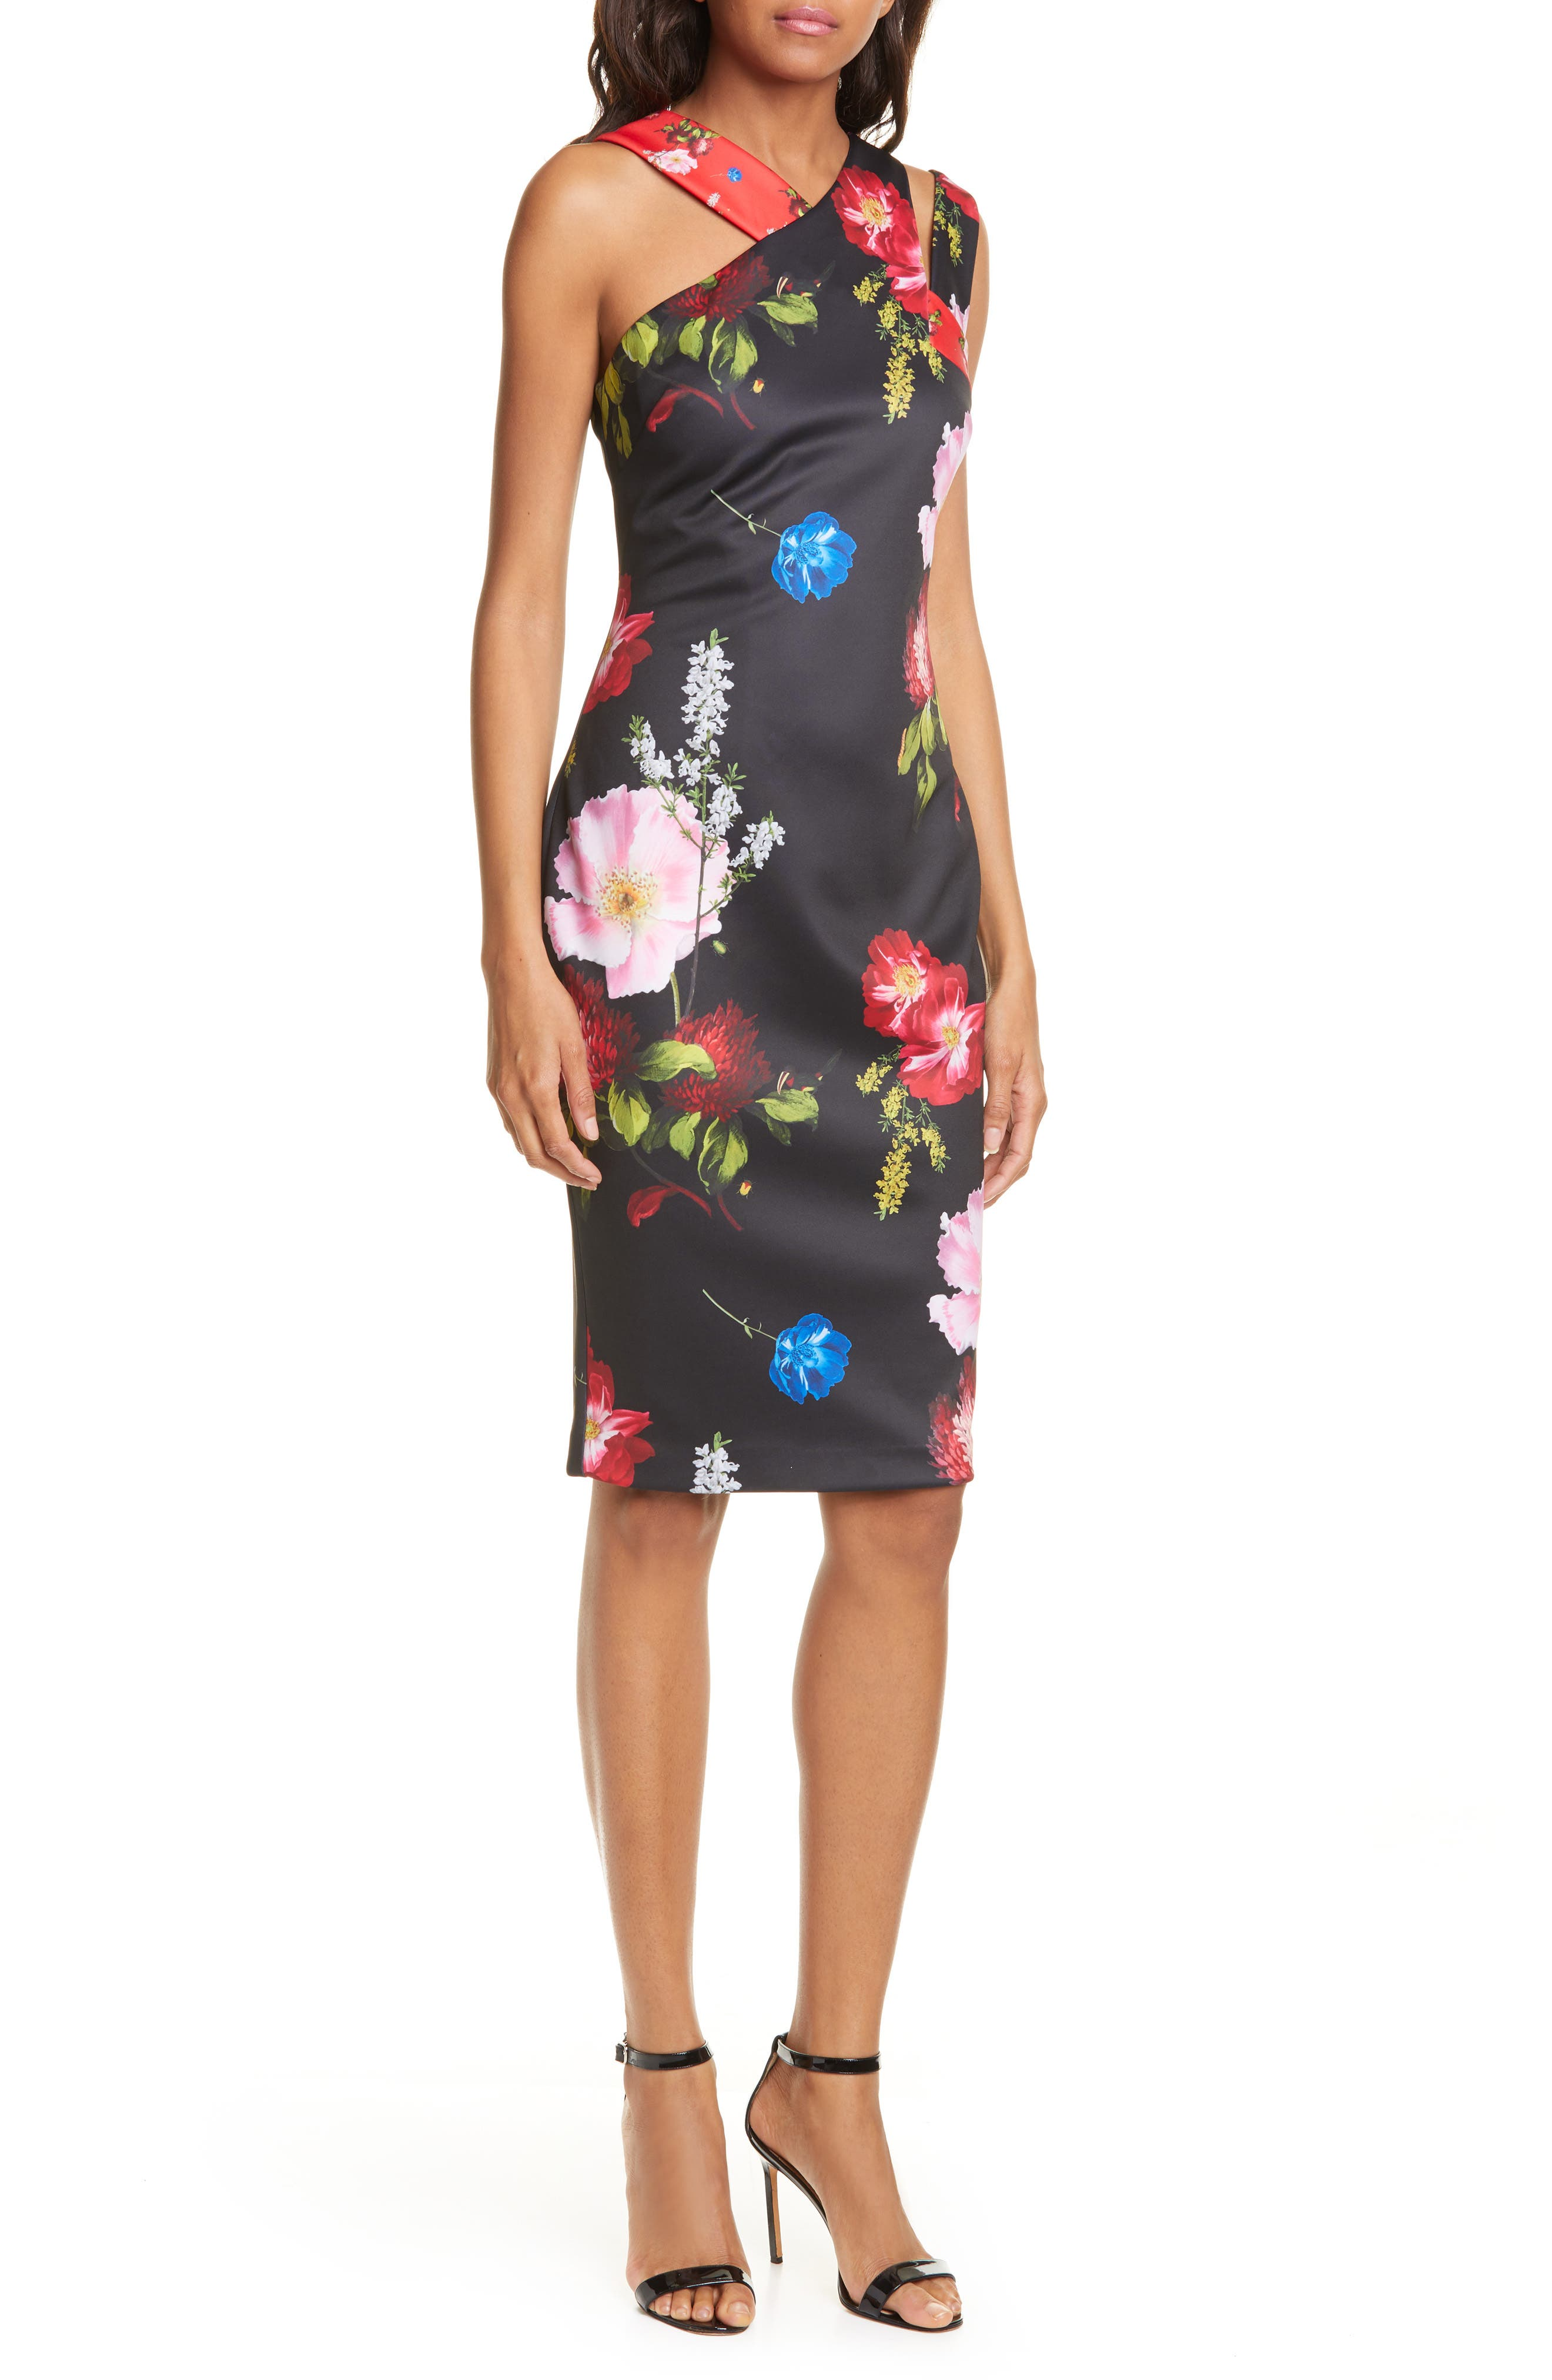 1902484a571b Ted Baker London Berry Sundae Floral Asymmetrical Sheath Dress